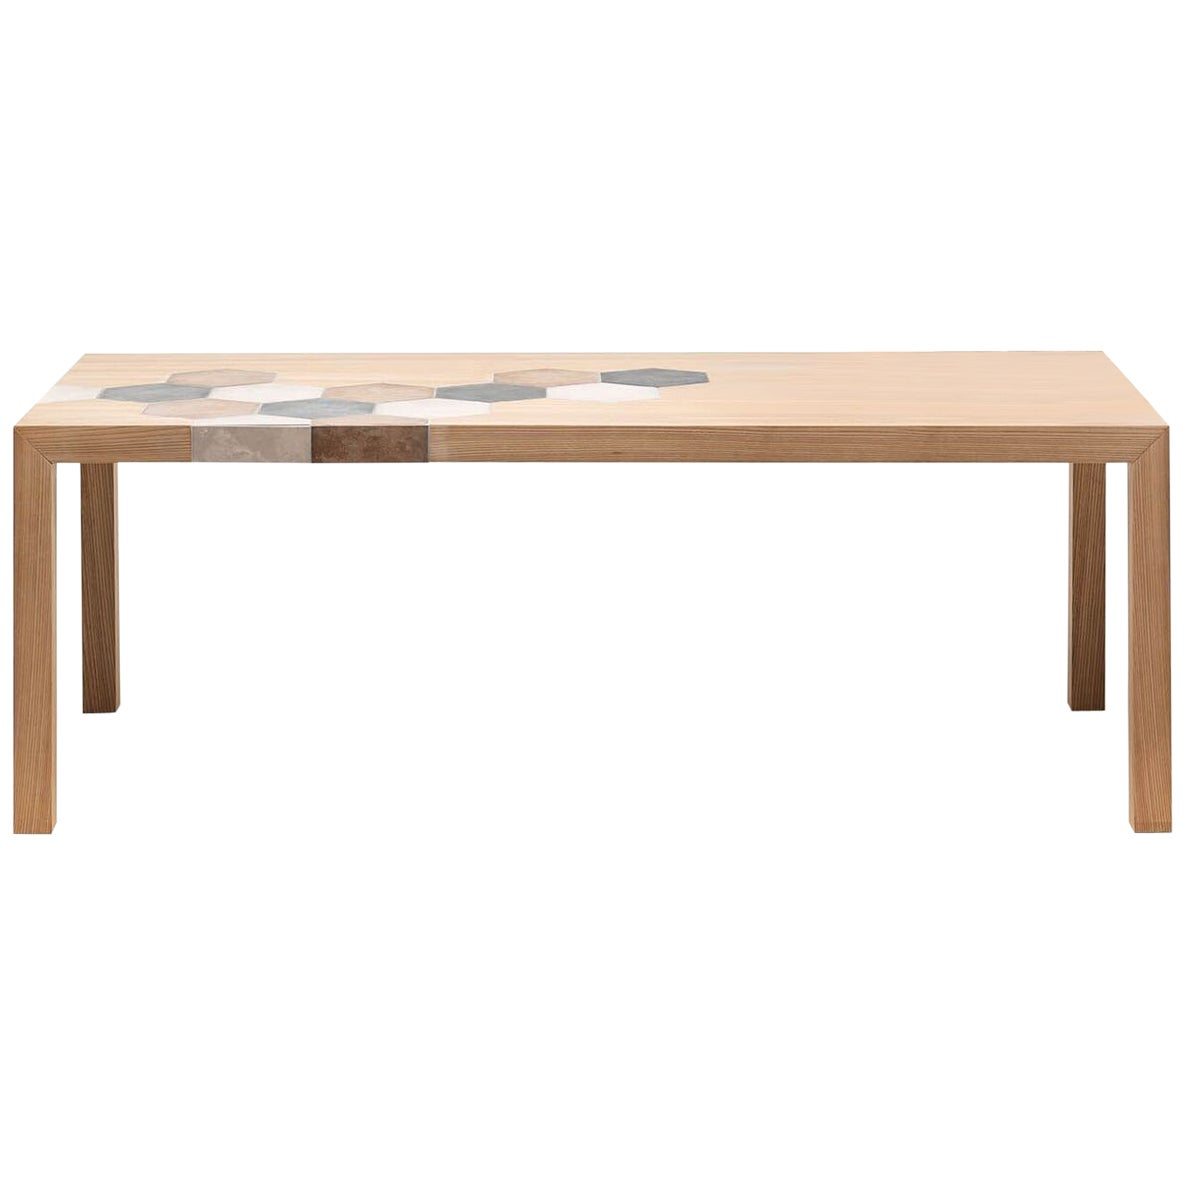 Large Cementino Dining Table in Natural Finish by Mogg